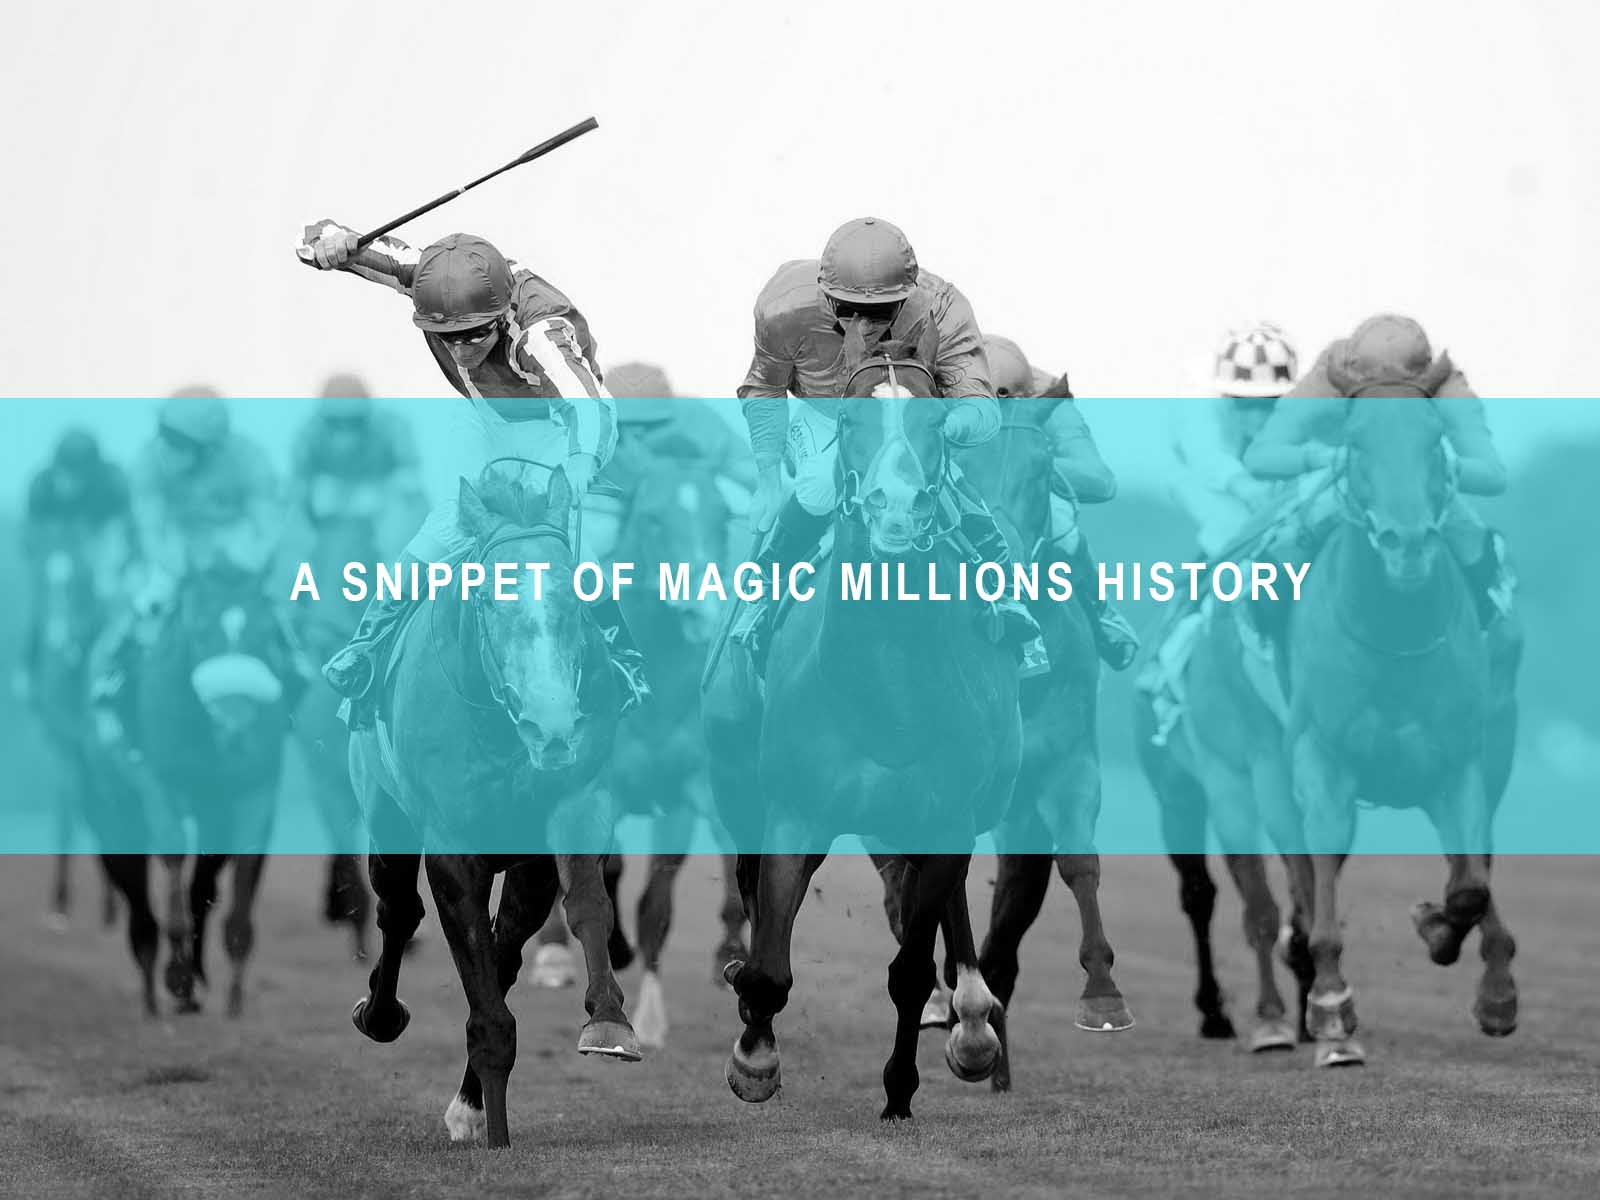 A SNIPPET OF MAGIC MILLIONS HISTORY